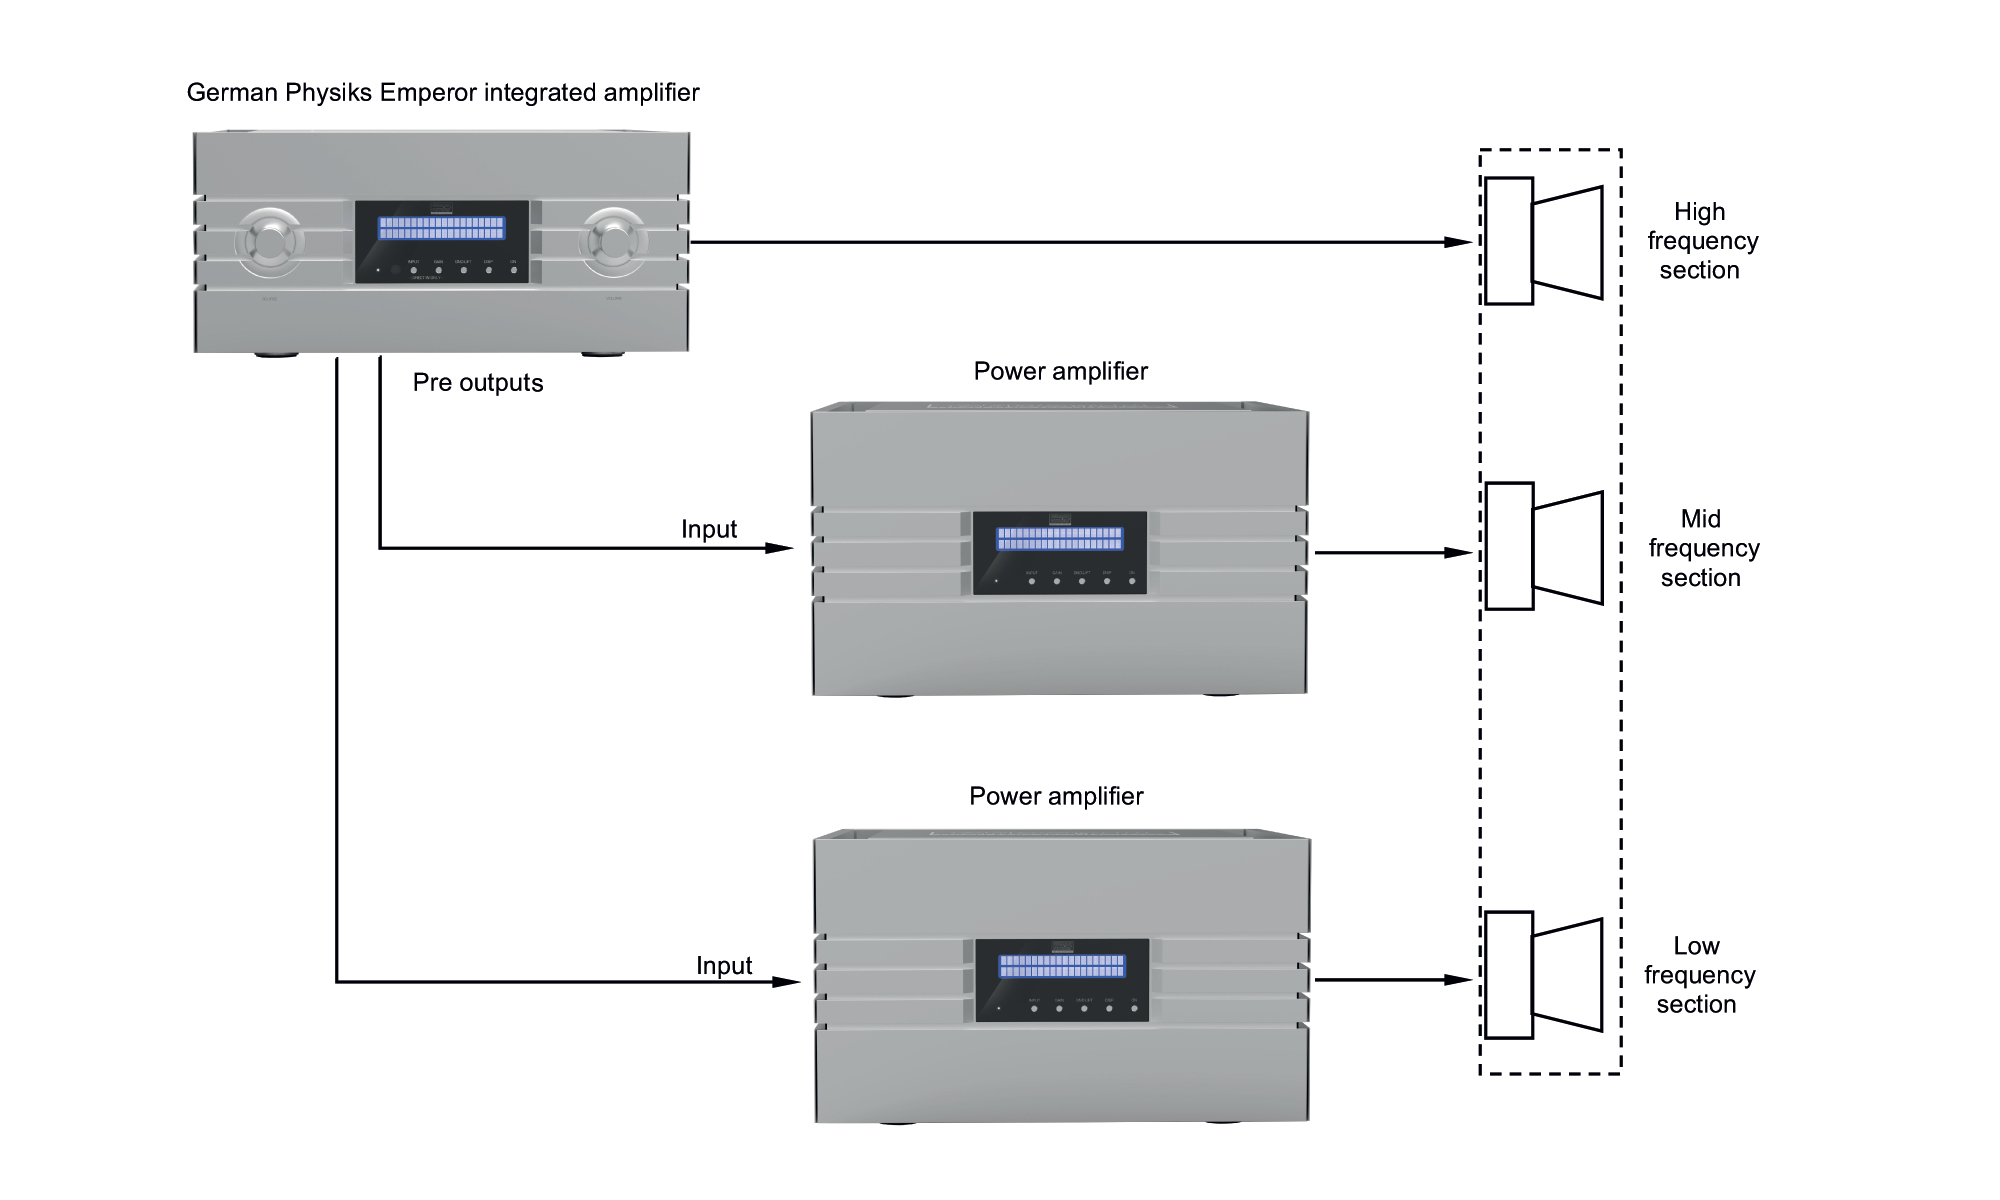 Emperor integrated amplifier in multi-amp system with a 3-way loudspeaker